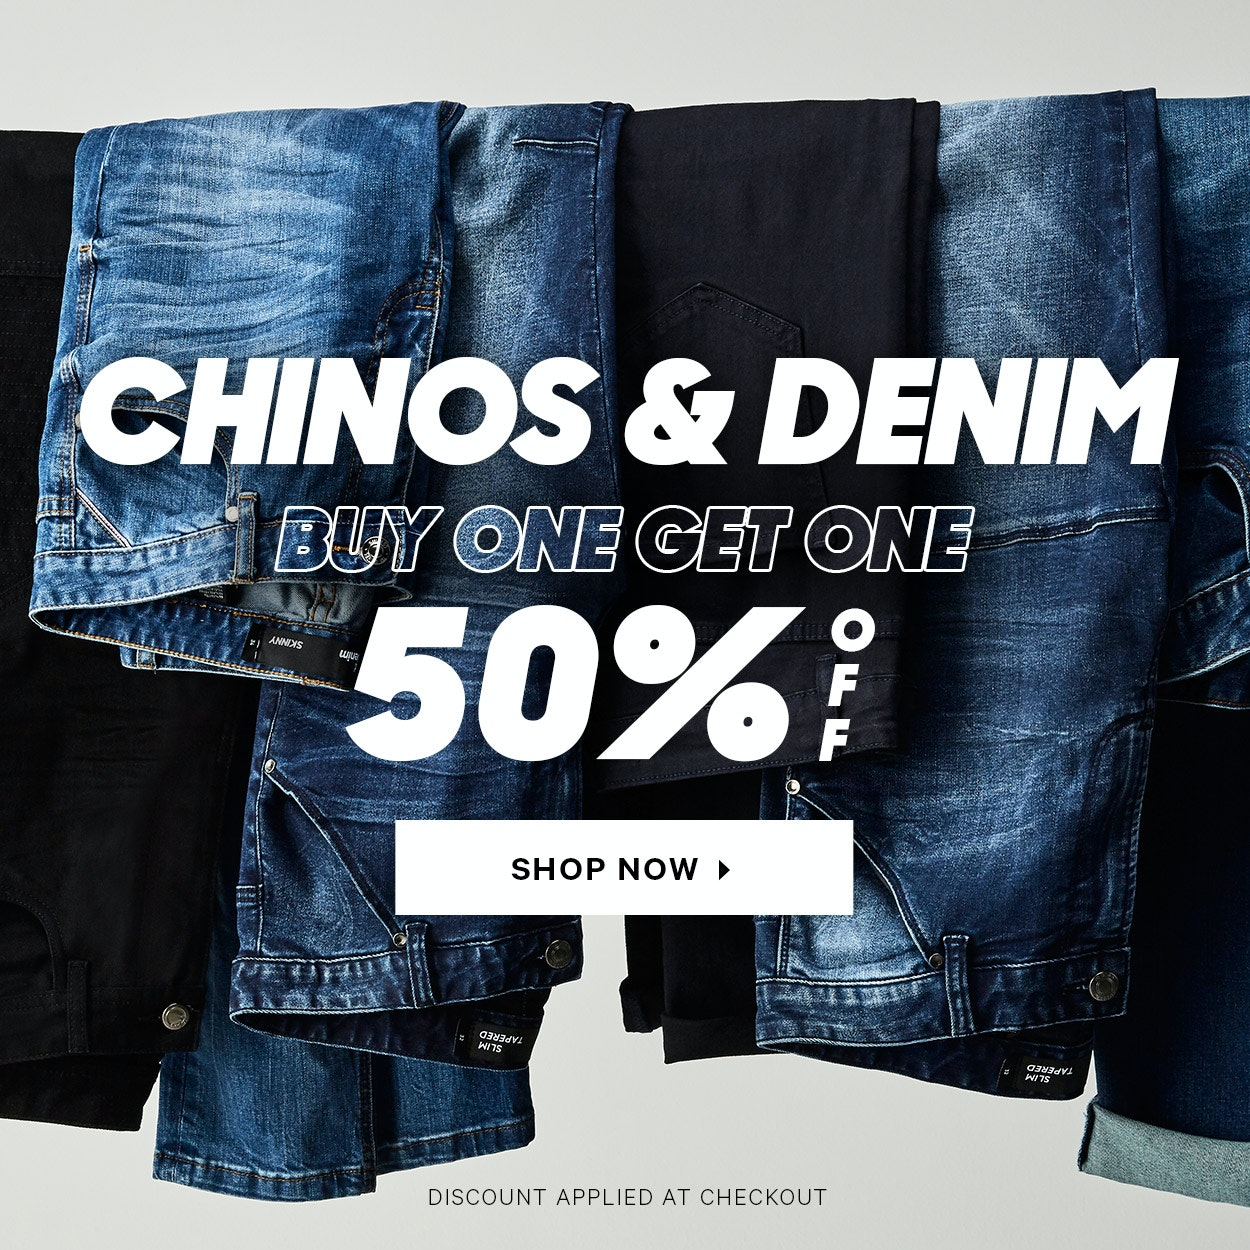 Chinos and Denim Buy One Get One 50% Off